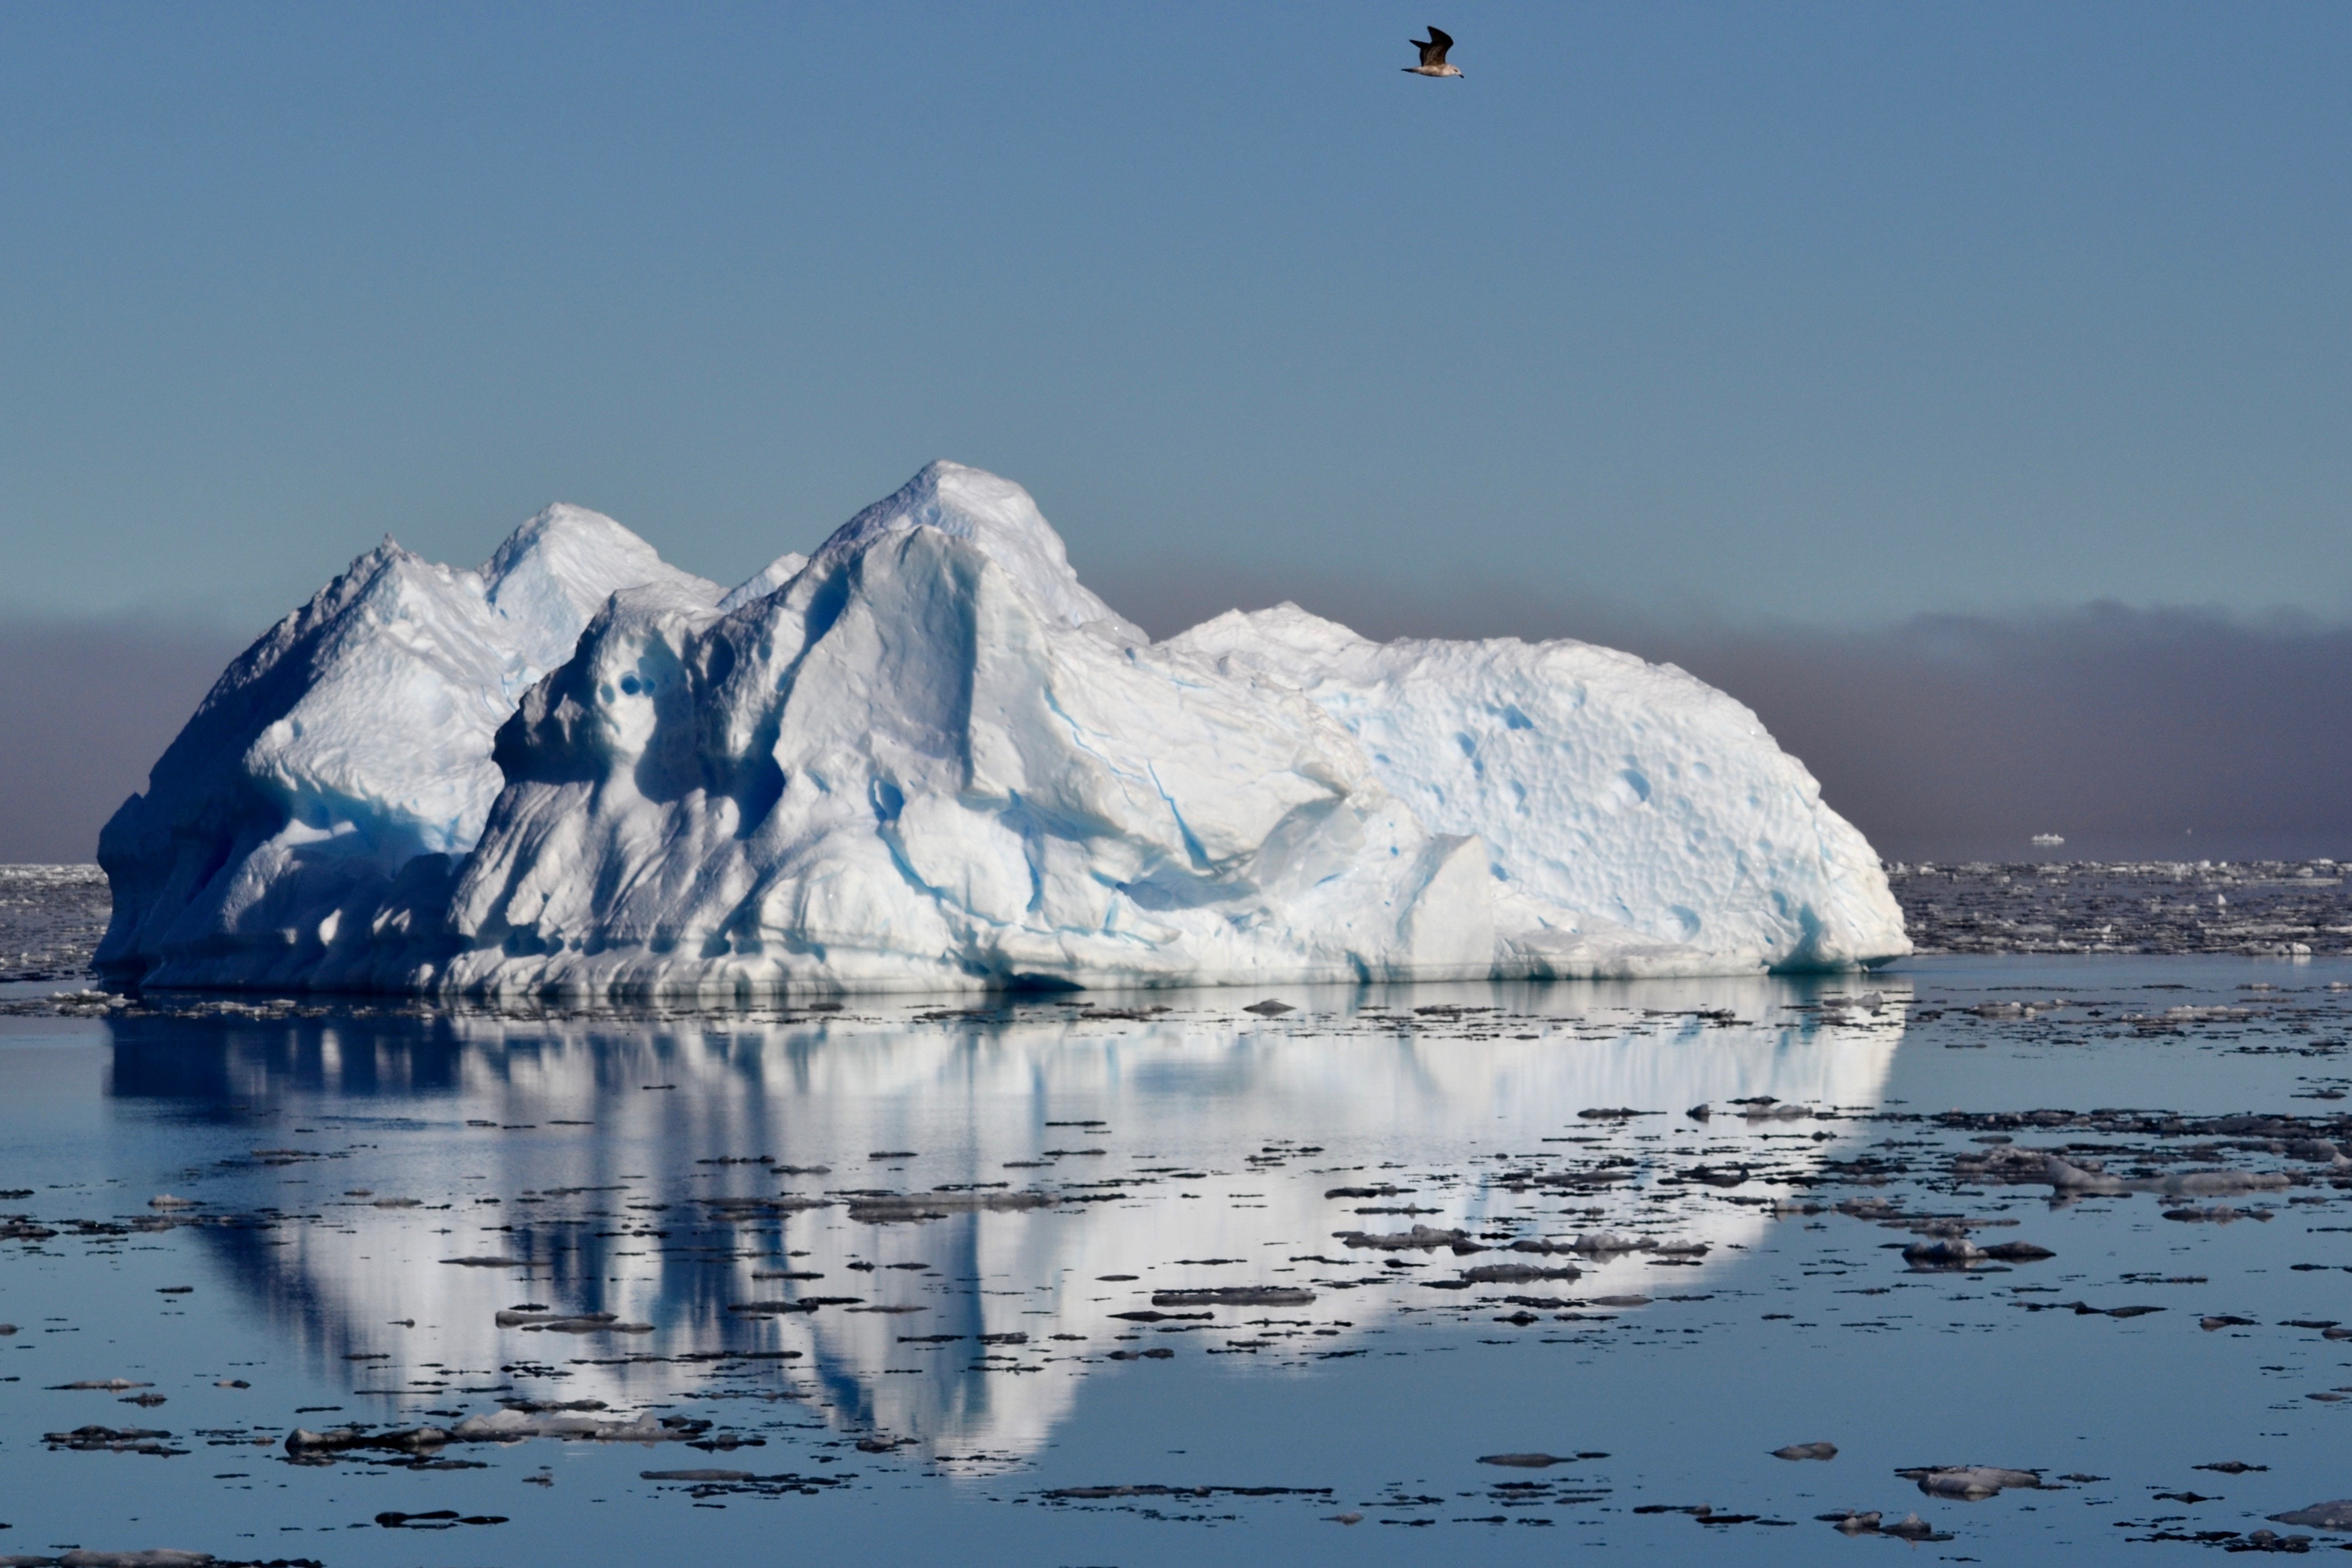 While sailing the Rio Témpanos, hundreds of ice pieces announced our arrival to the glacier.